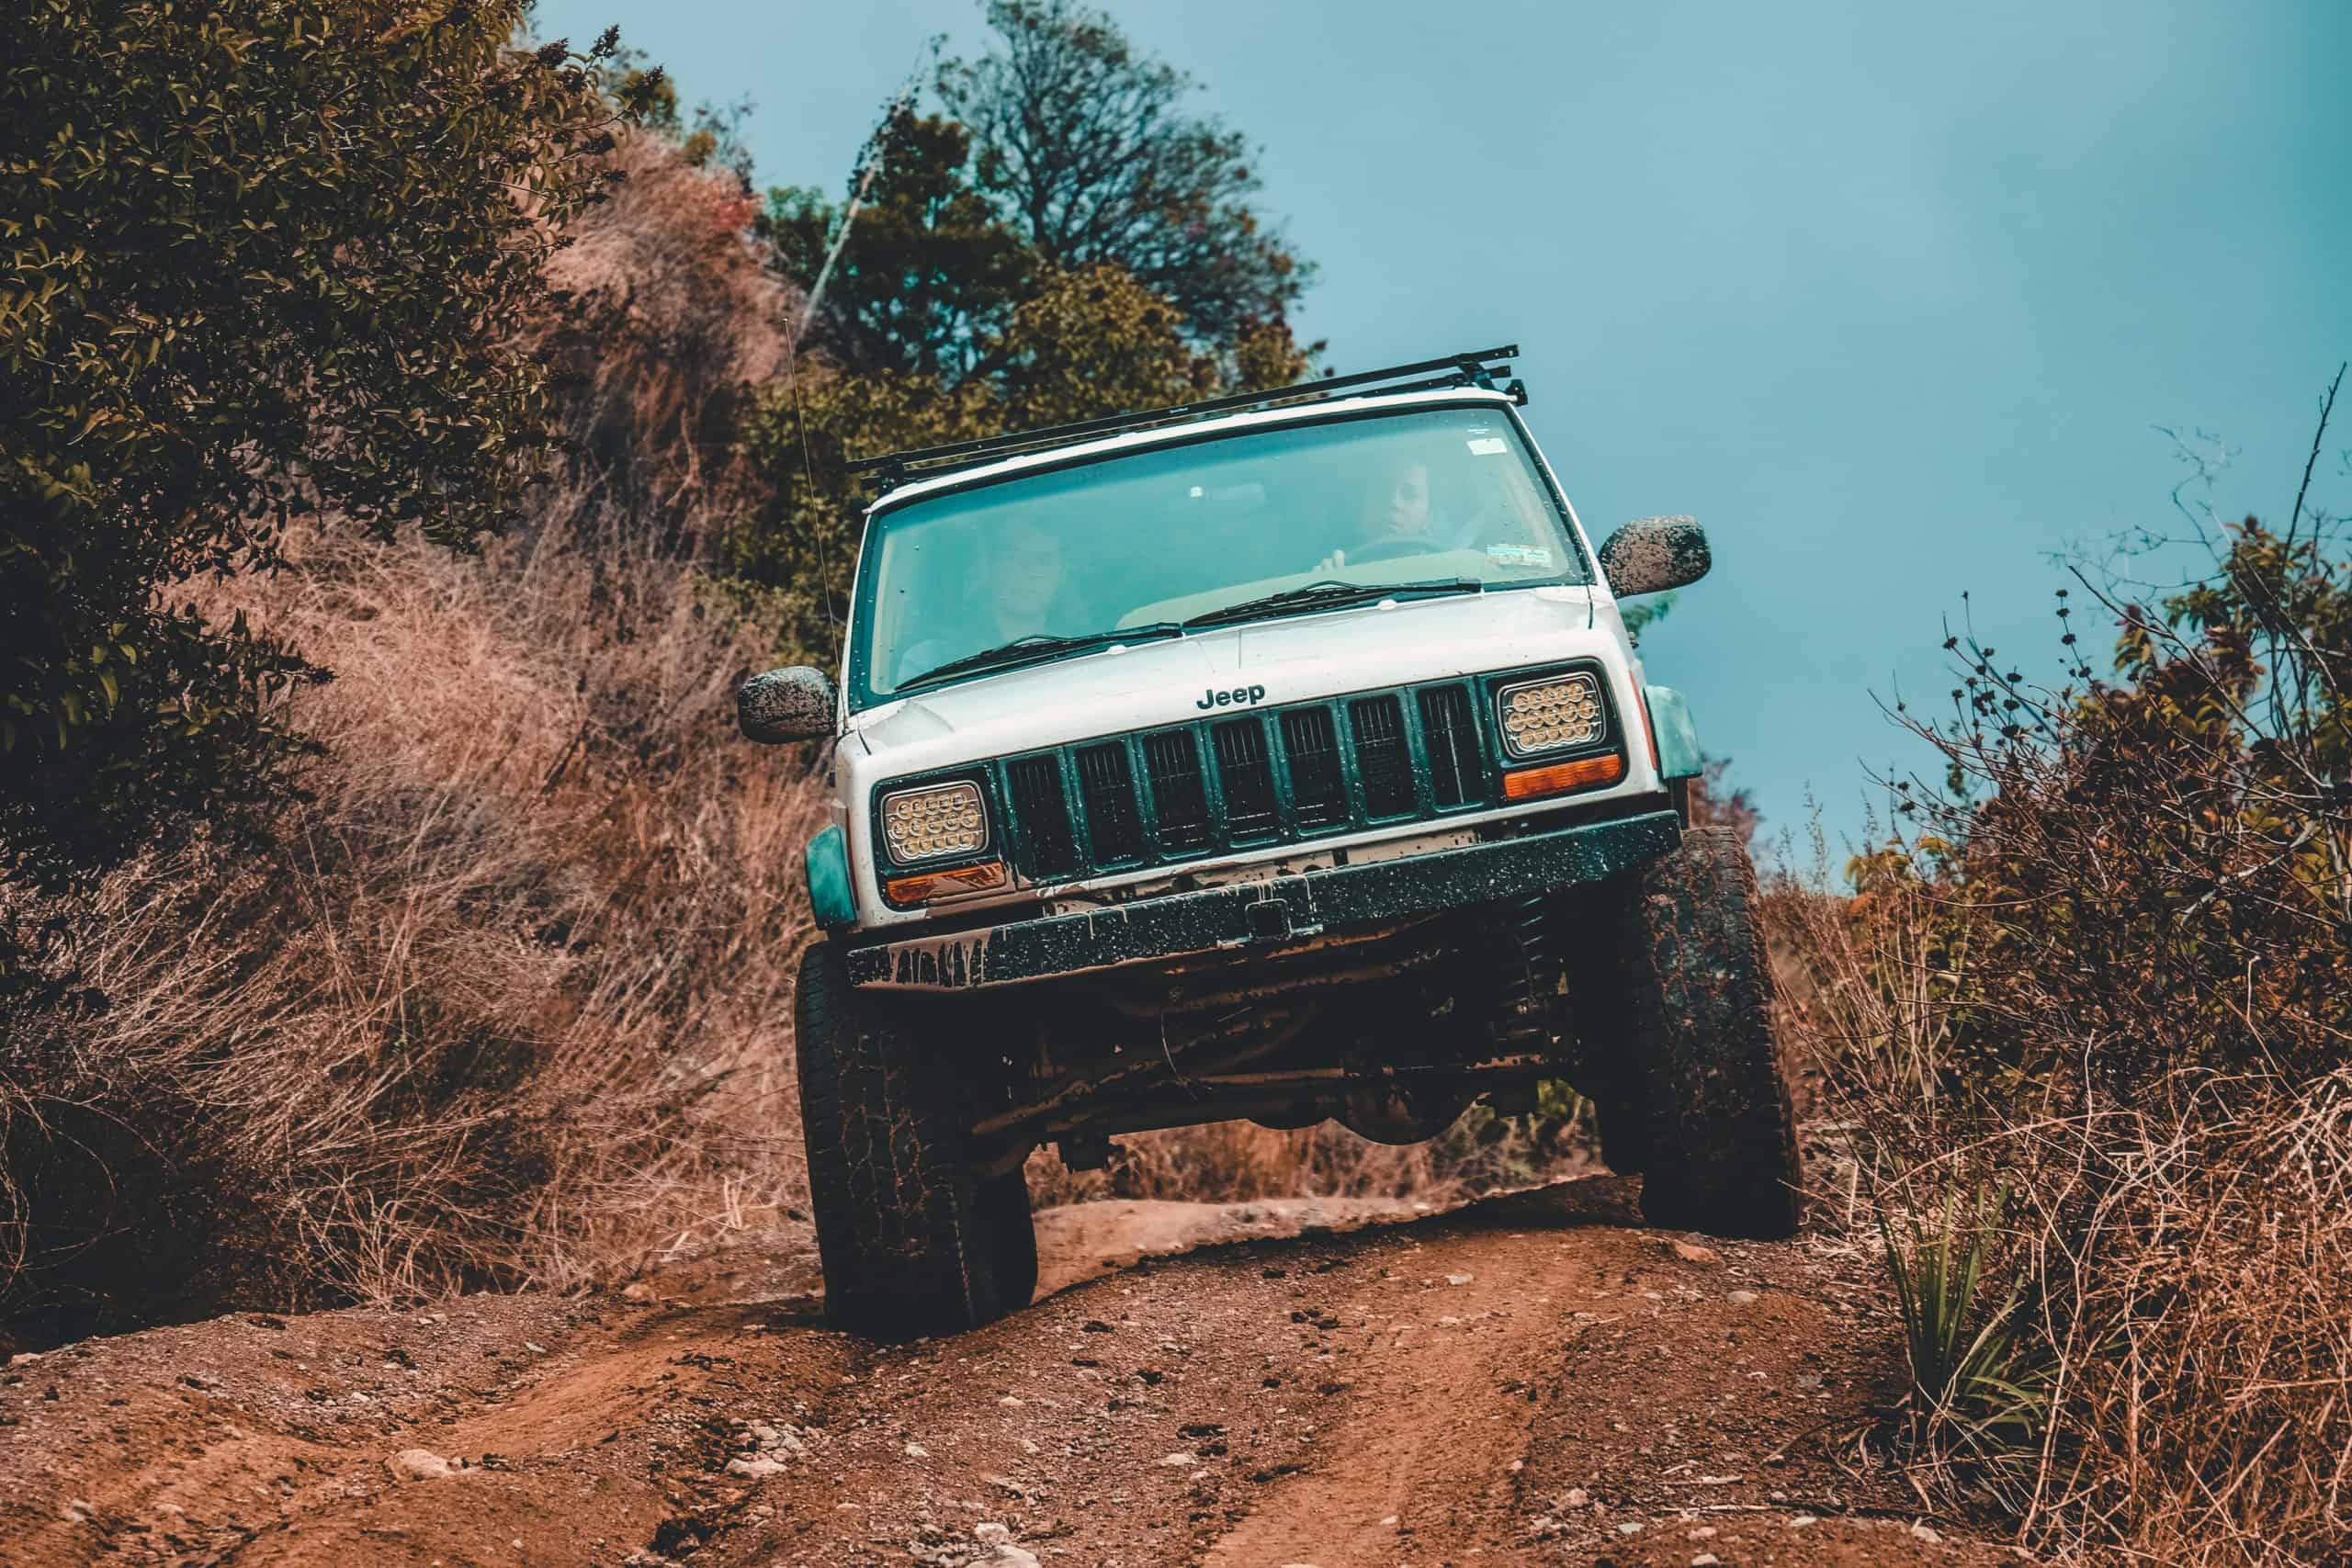 Off Road Vehicles: 3 Driving Tips